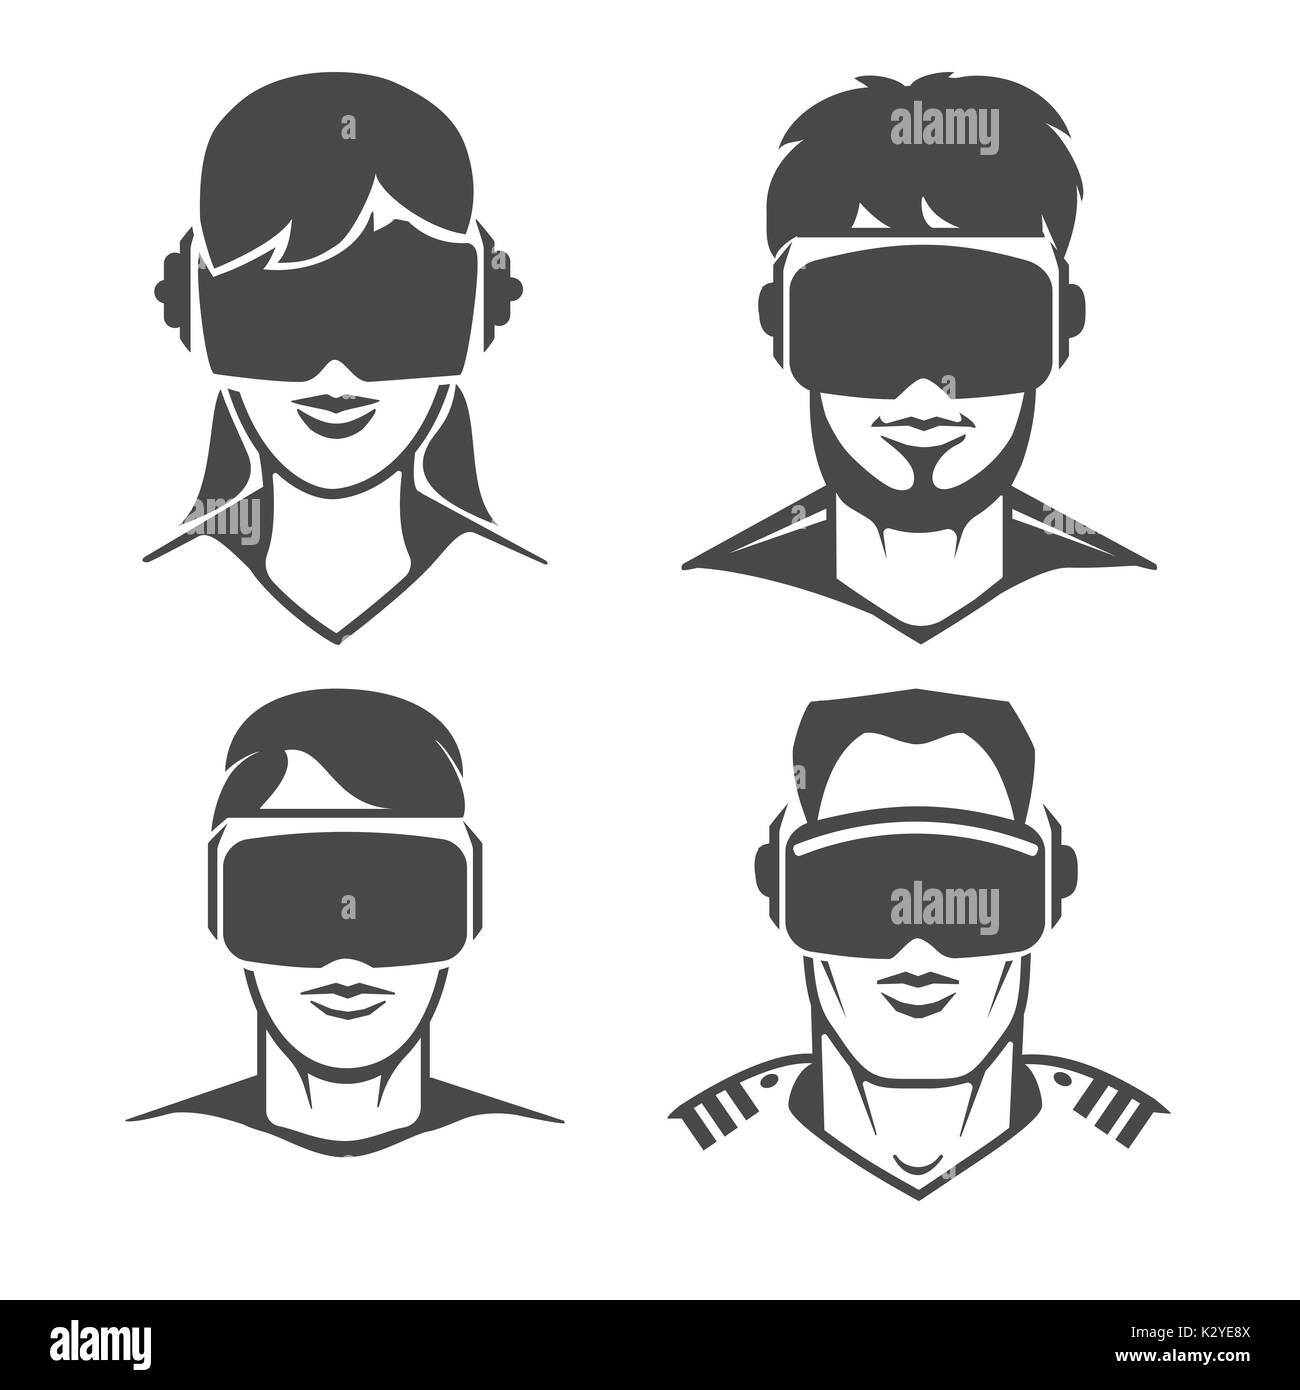 f091a0af28b Human heads with VR headset icons. Virtual reality glasses or oculus goggles  signs